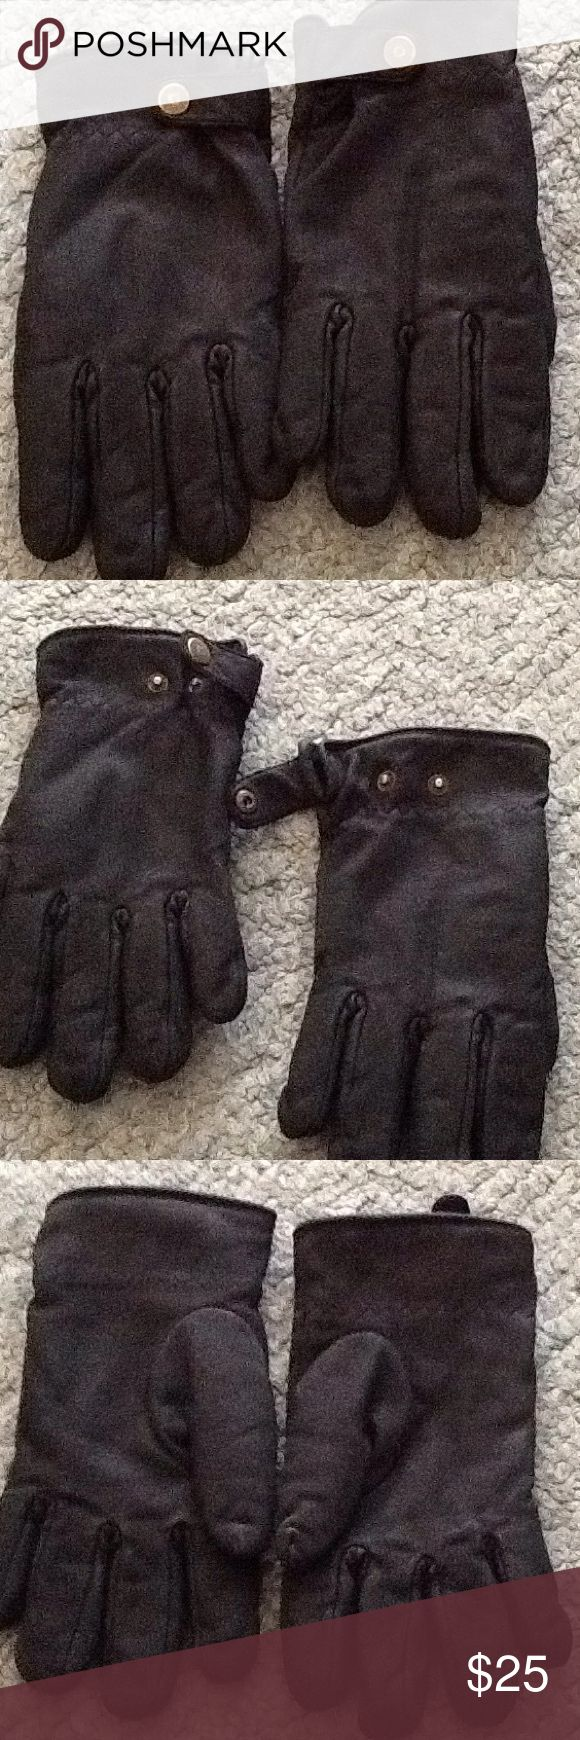 Size XL all leather black gloves Size XL all leather Thinsulate, thermal insulation black gloves in great condition. Great for cold climate ,Just cleaned ready to be used Thinsulate Accessories Gloves